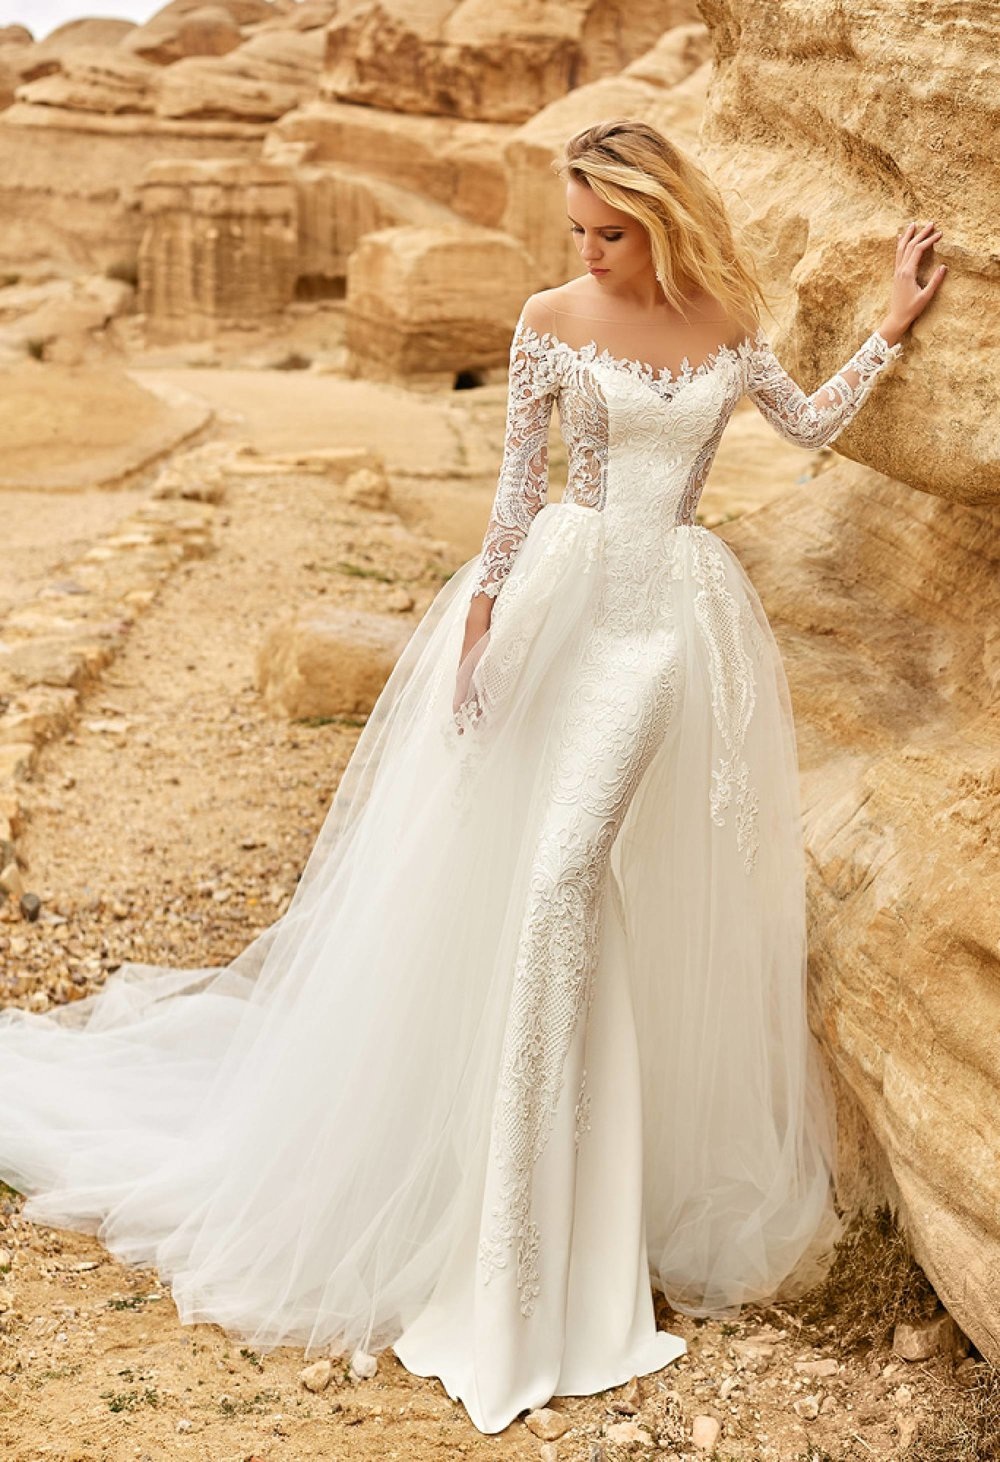 AMADEA Wedding Dress by OKSANA MUKHA